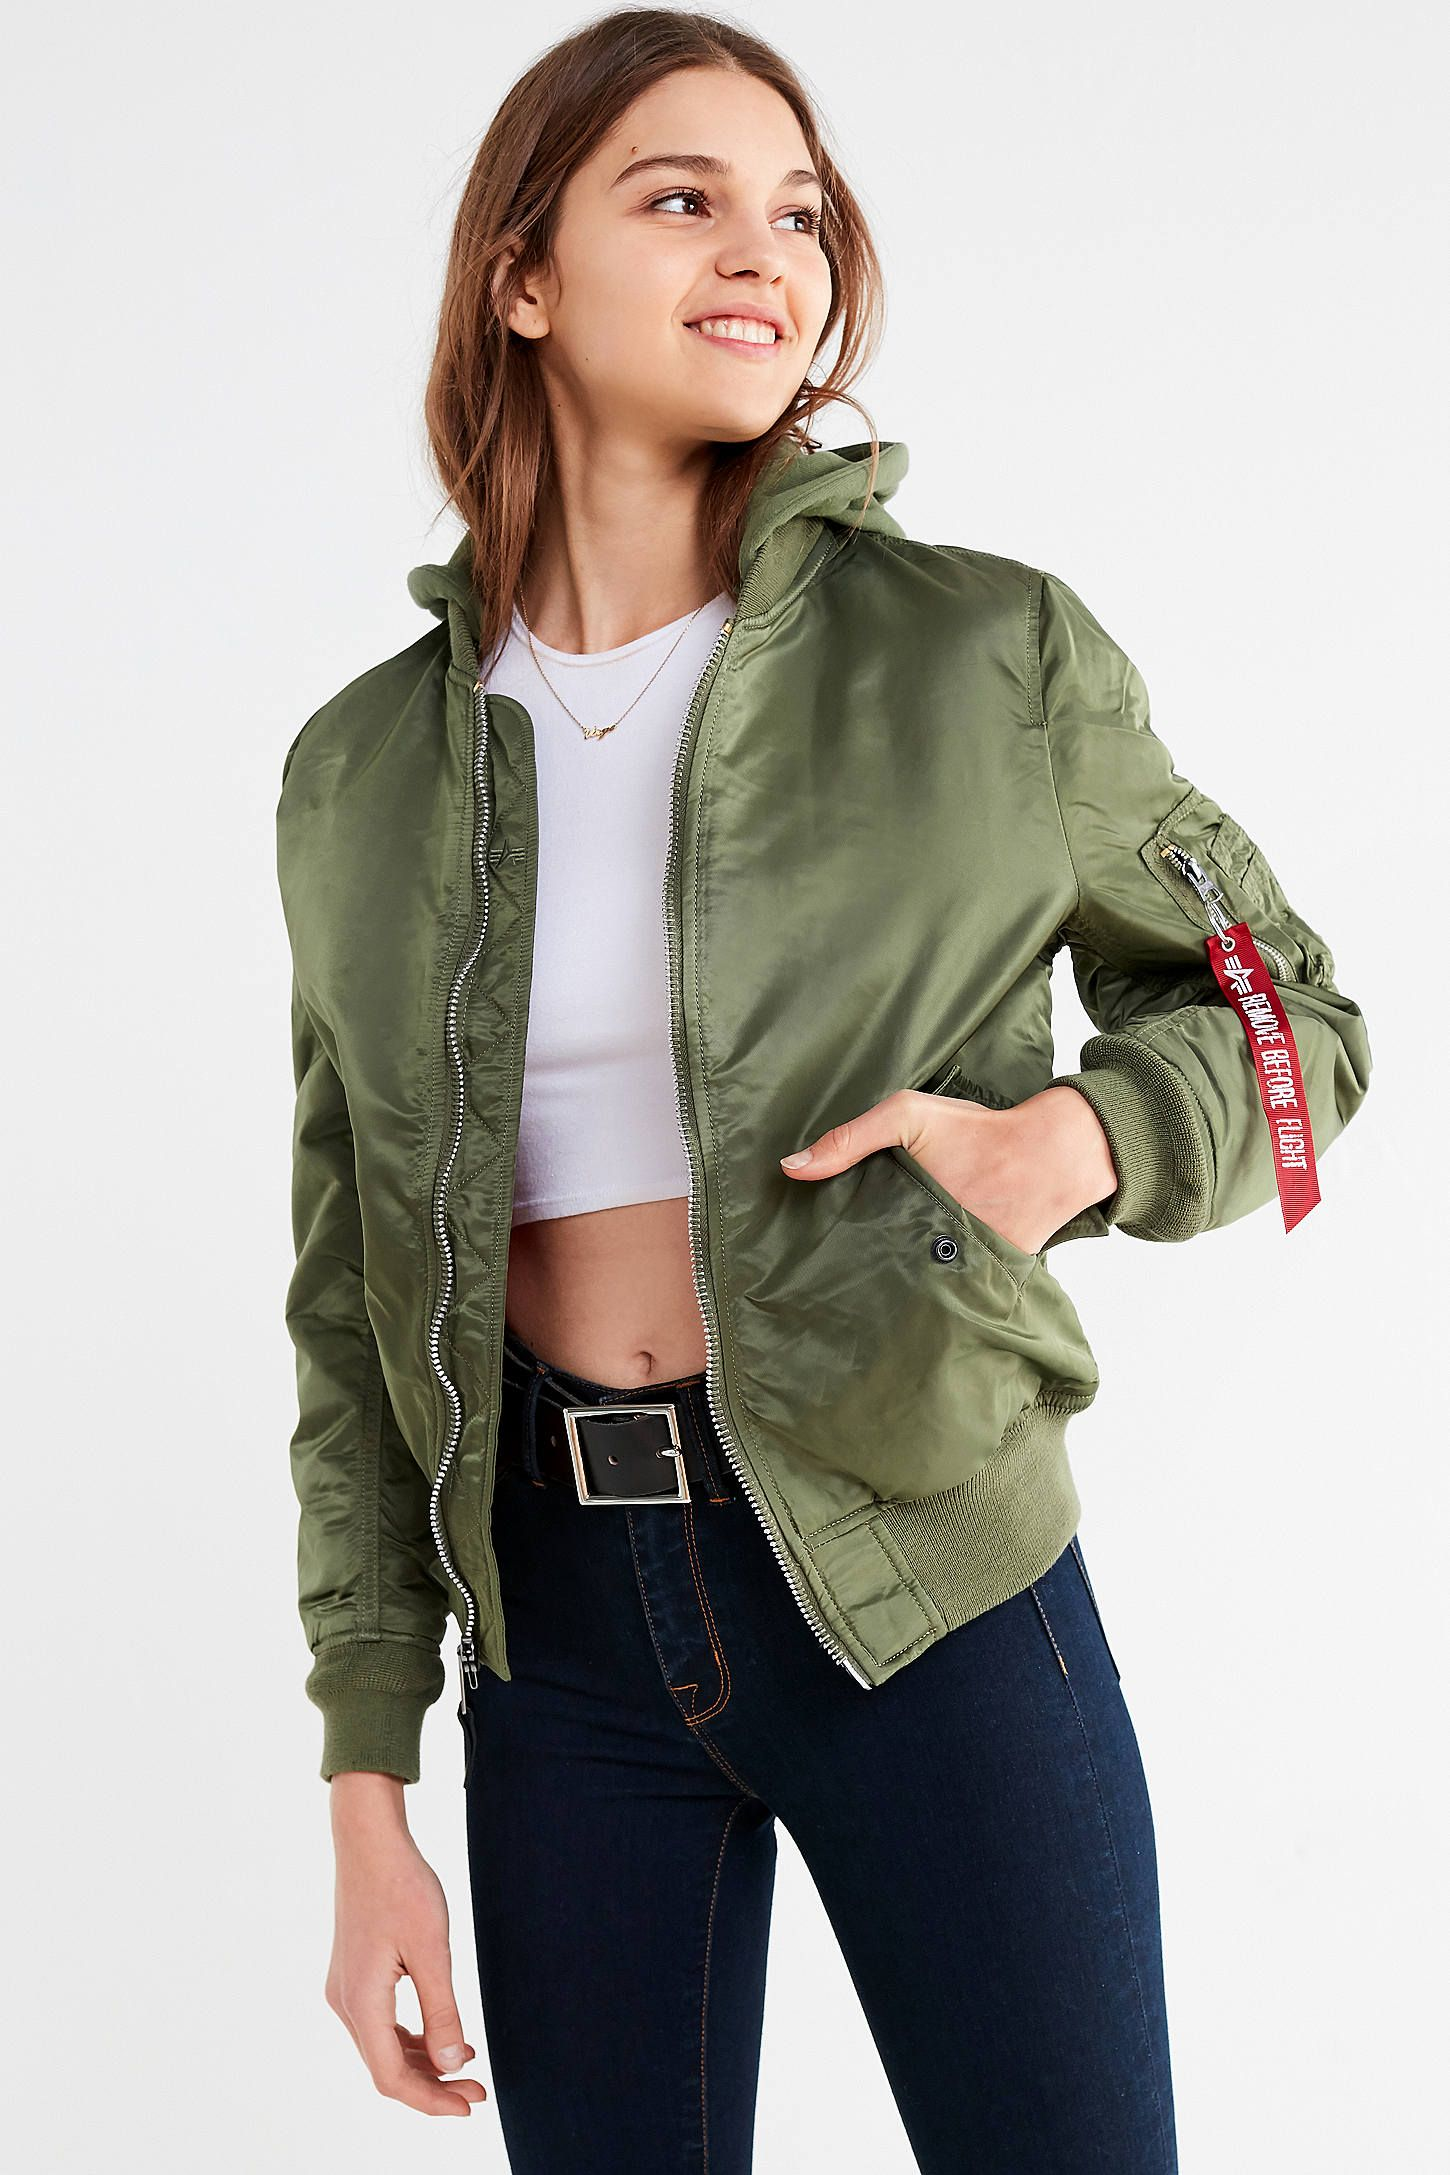 364839b93 Alpha Industries MA-1 Natus Bomber Jacket in 2019 | My style ...